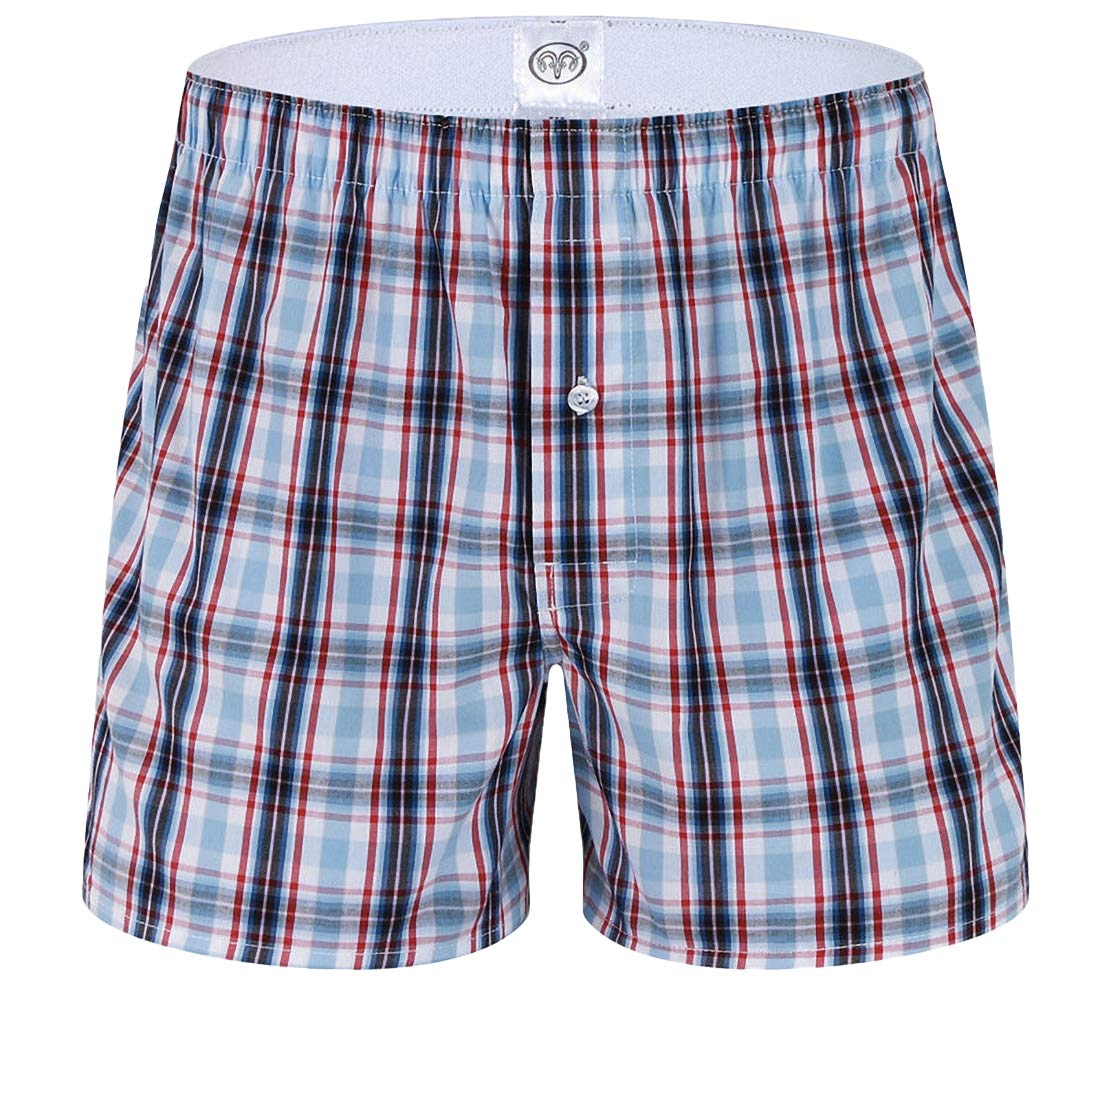 Rrive Men Loose Check Comfy Breathable Cotton Boxer Briefs